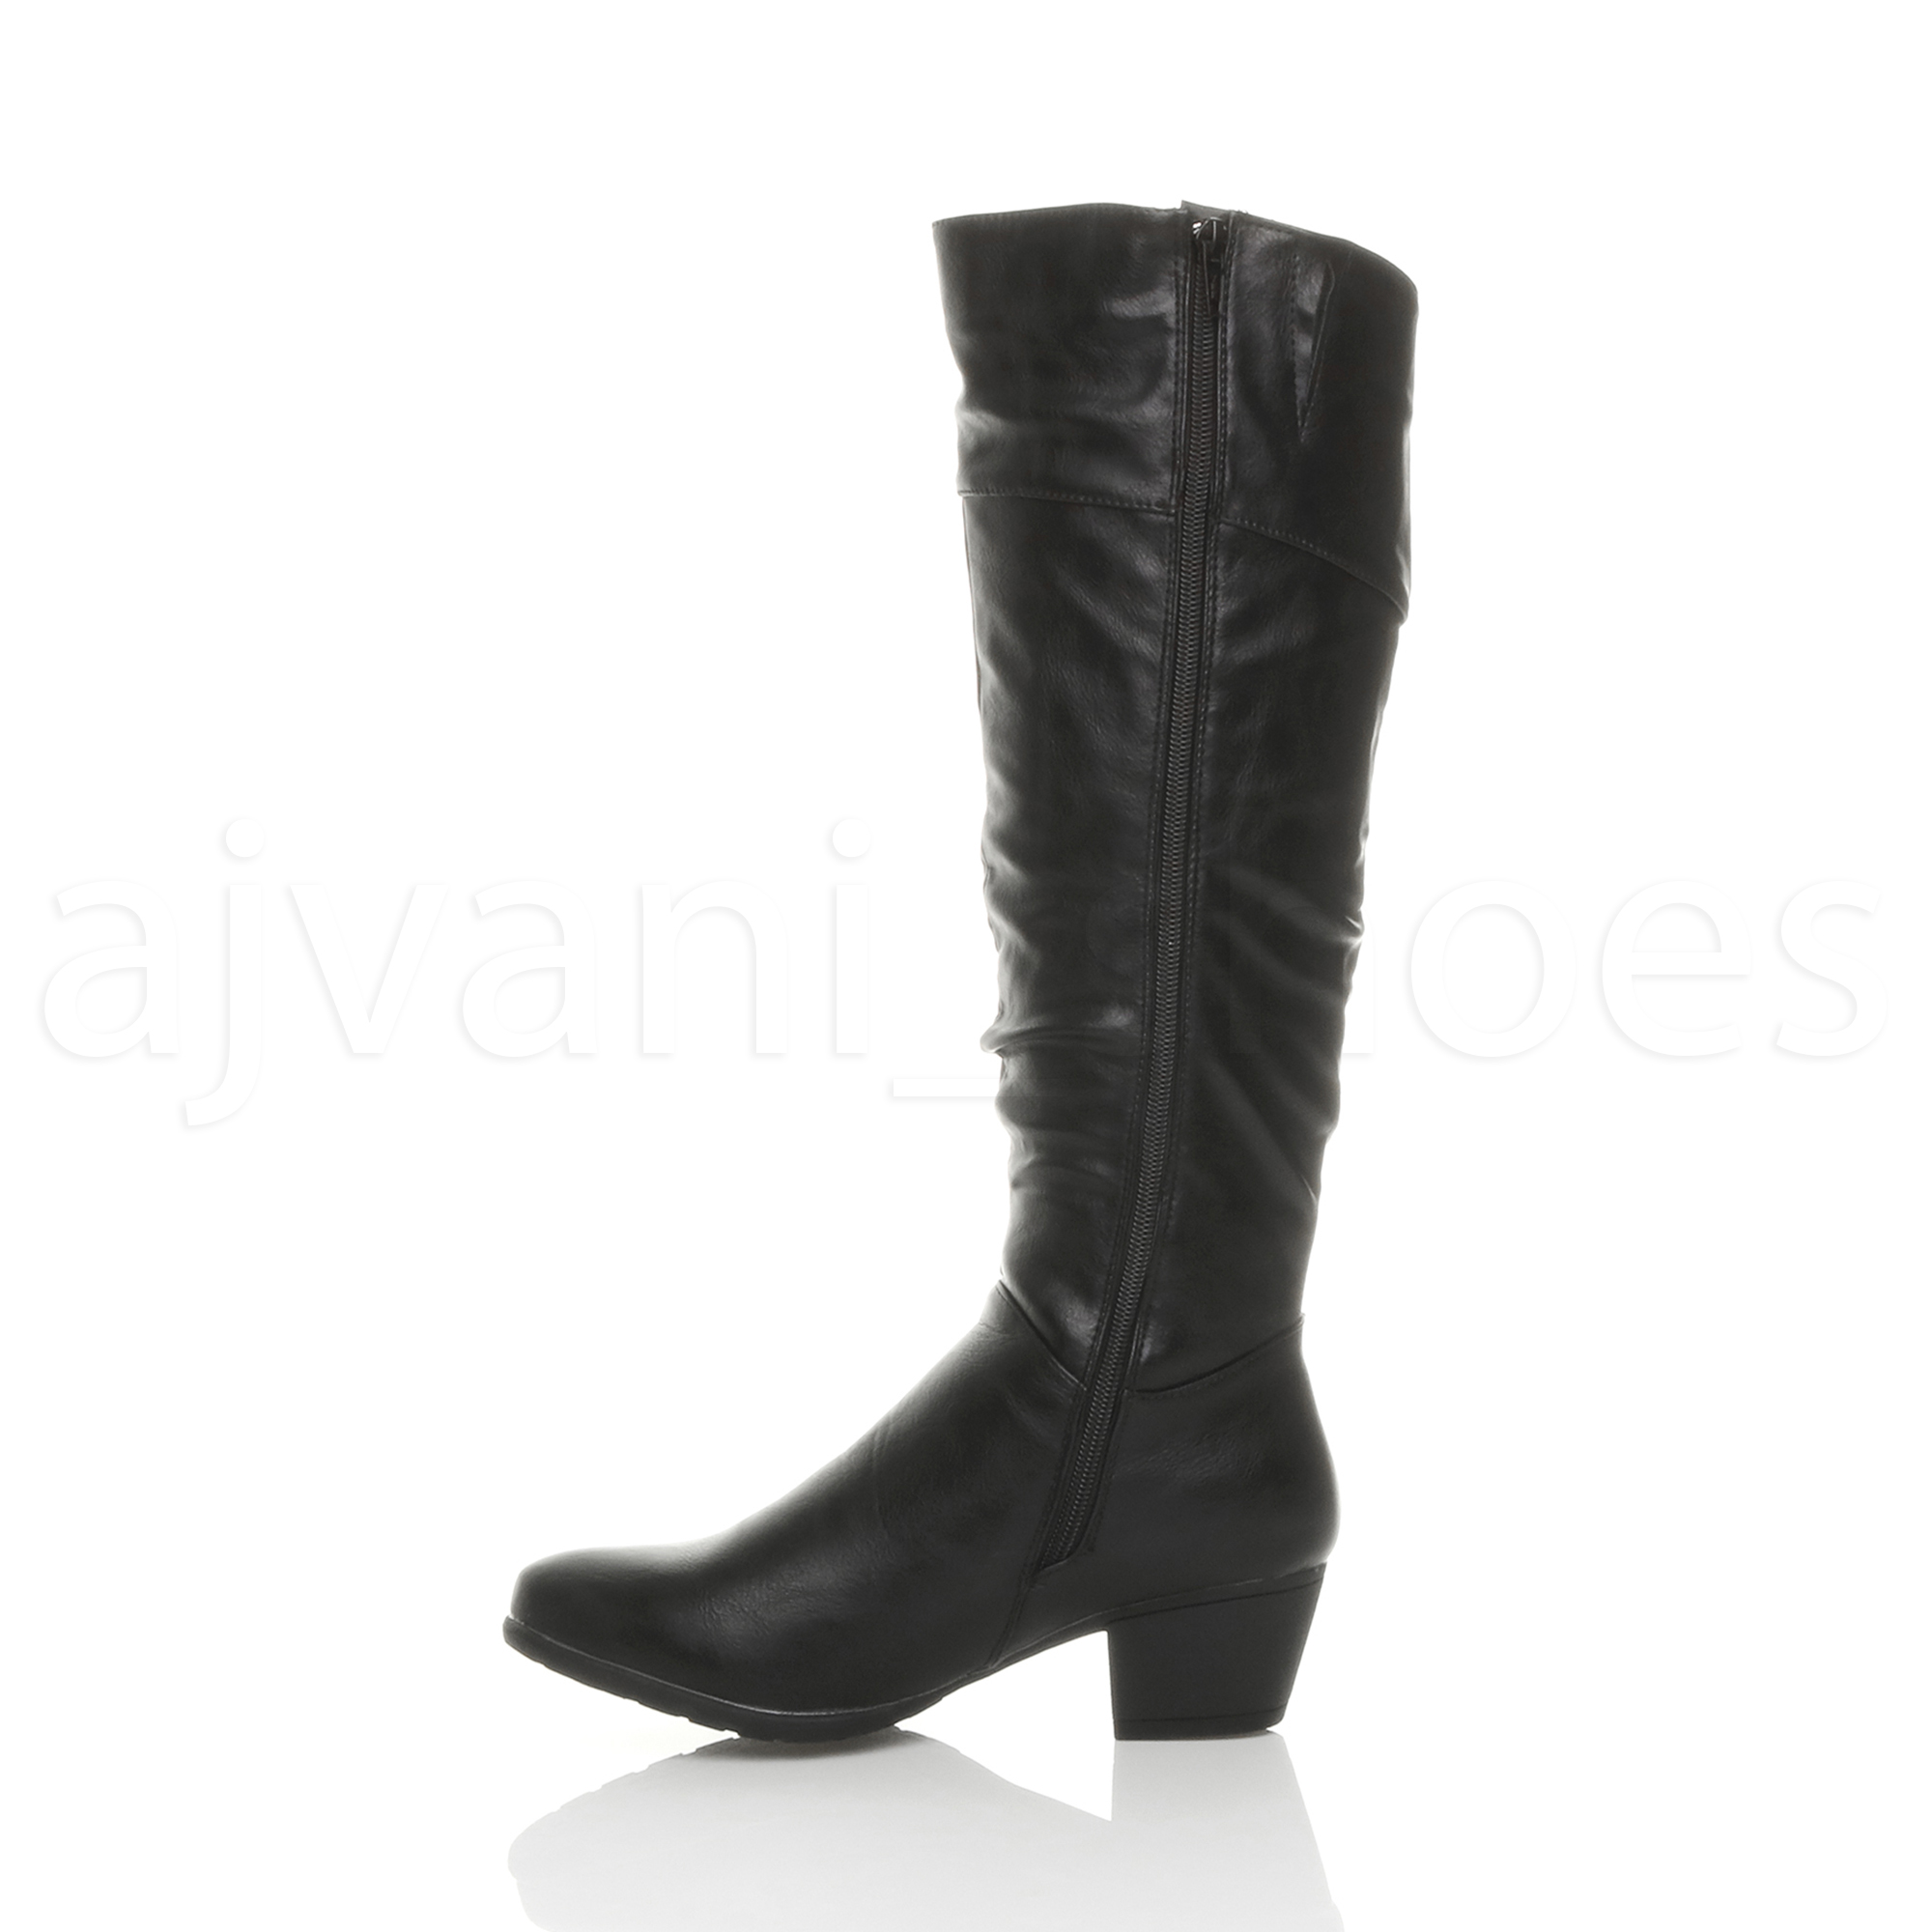 WOMENS-LADIES-CUBAN-MID-HEEL-ZIP-RUCHED-SLIM-CALF-COWBOY-RIDING-KNEE-BOOTS-SIZE